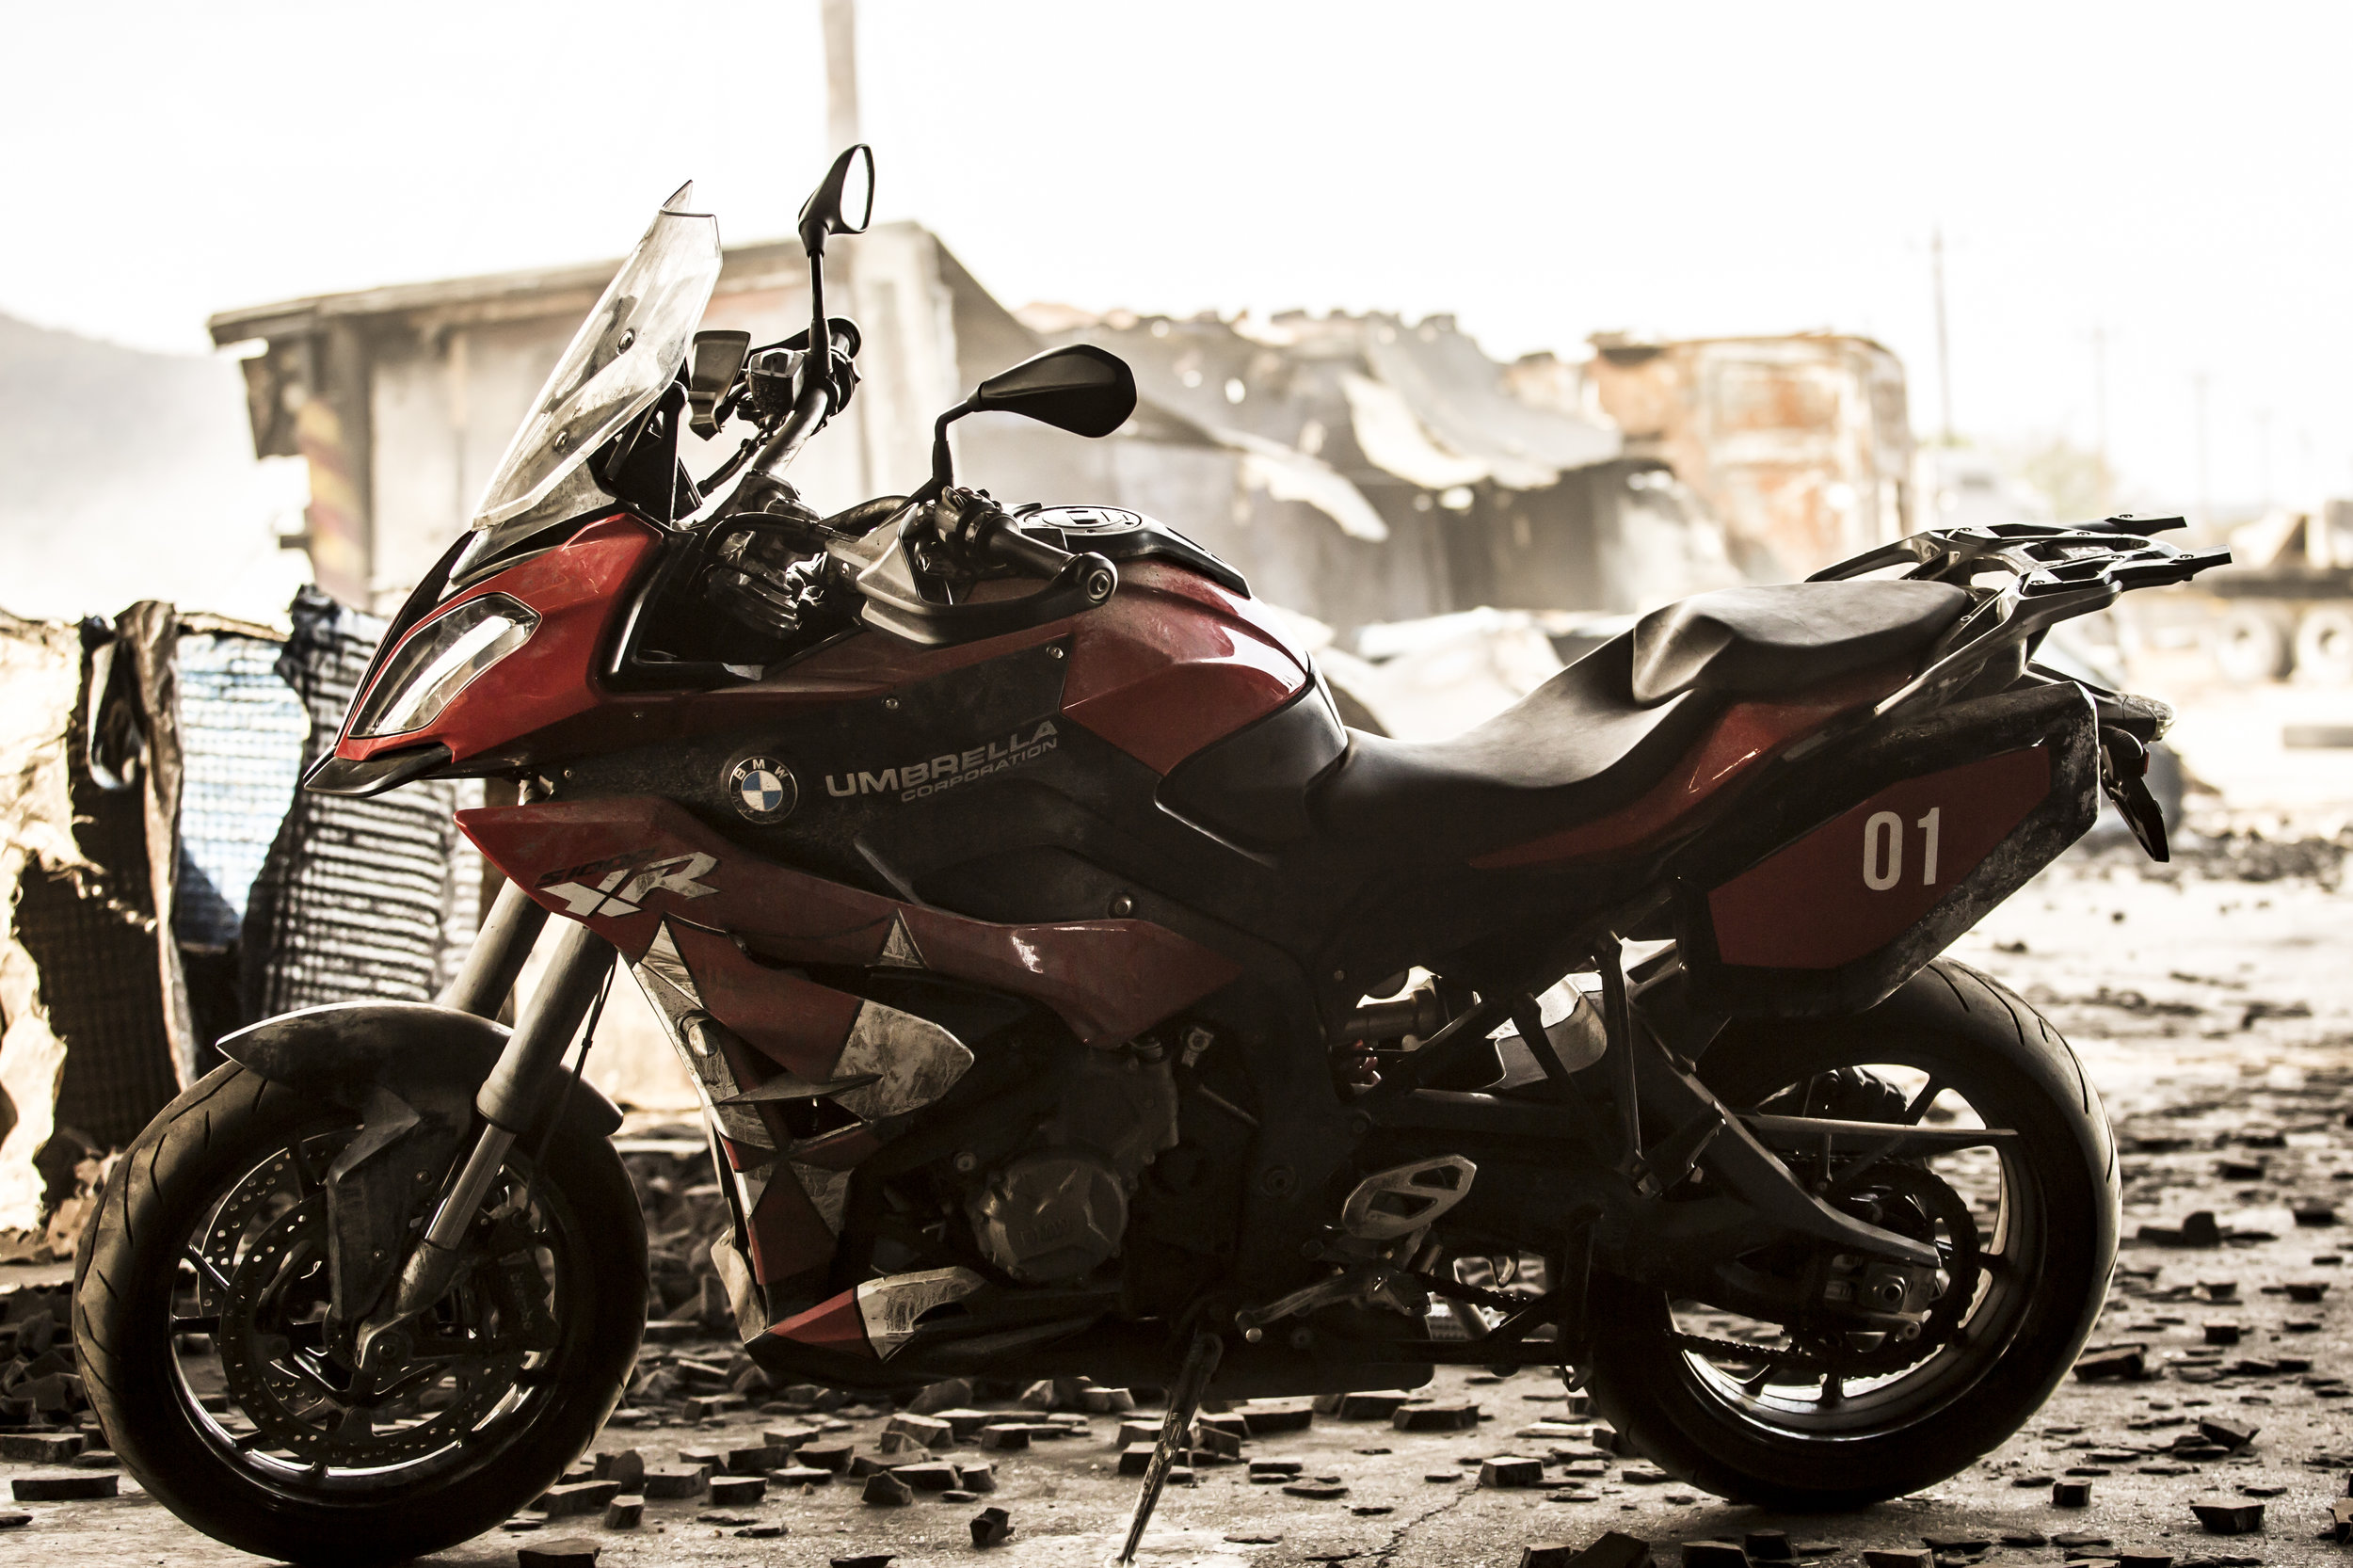 Two Lucky Fans Will Be Chosen To Make A Getaway Of Their Own On BMW's First Adventure Sports Bike